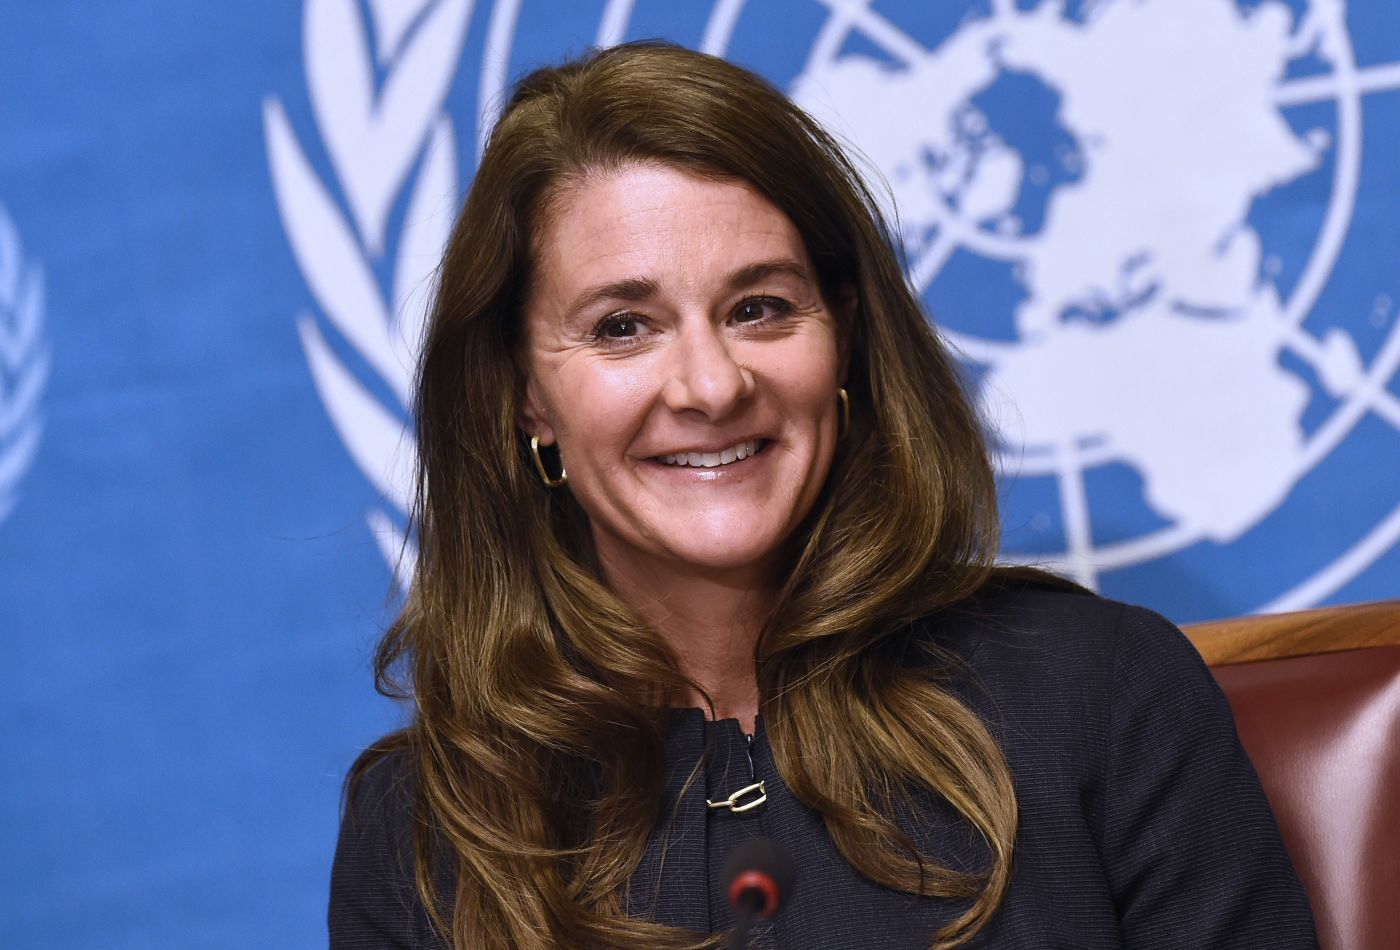 Melinda Gates: This Is Not A Once-In-A-Century Pandemic - We Will See More Pandemics In Our Lifetimes